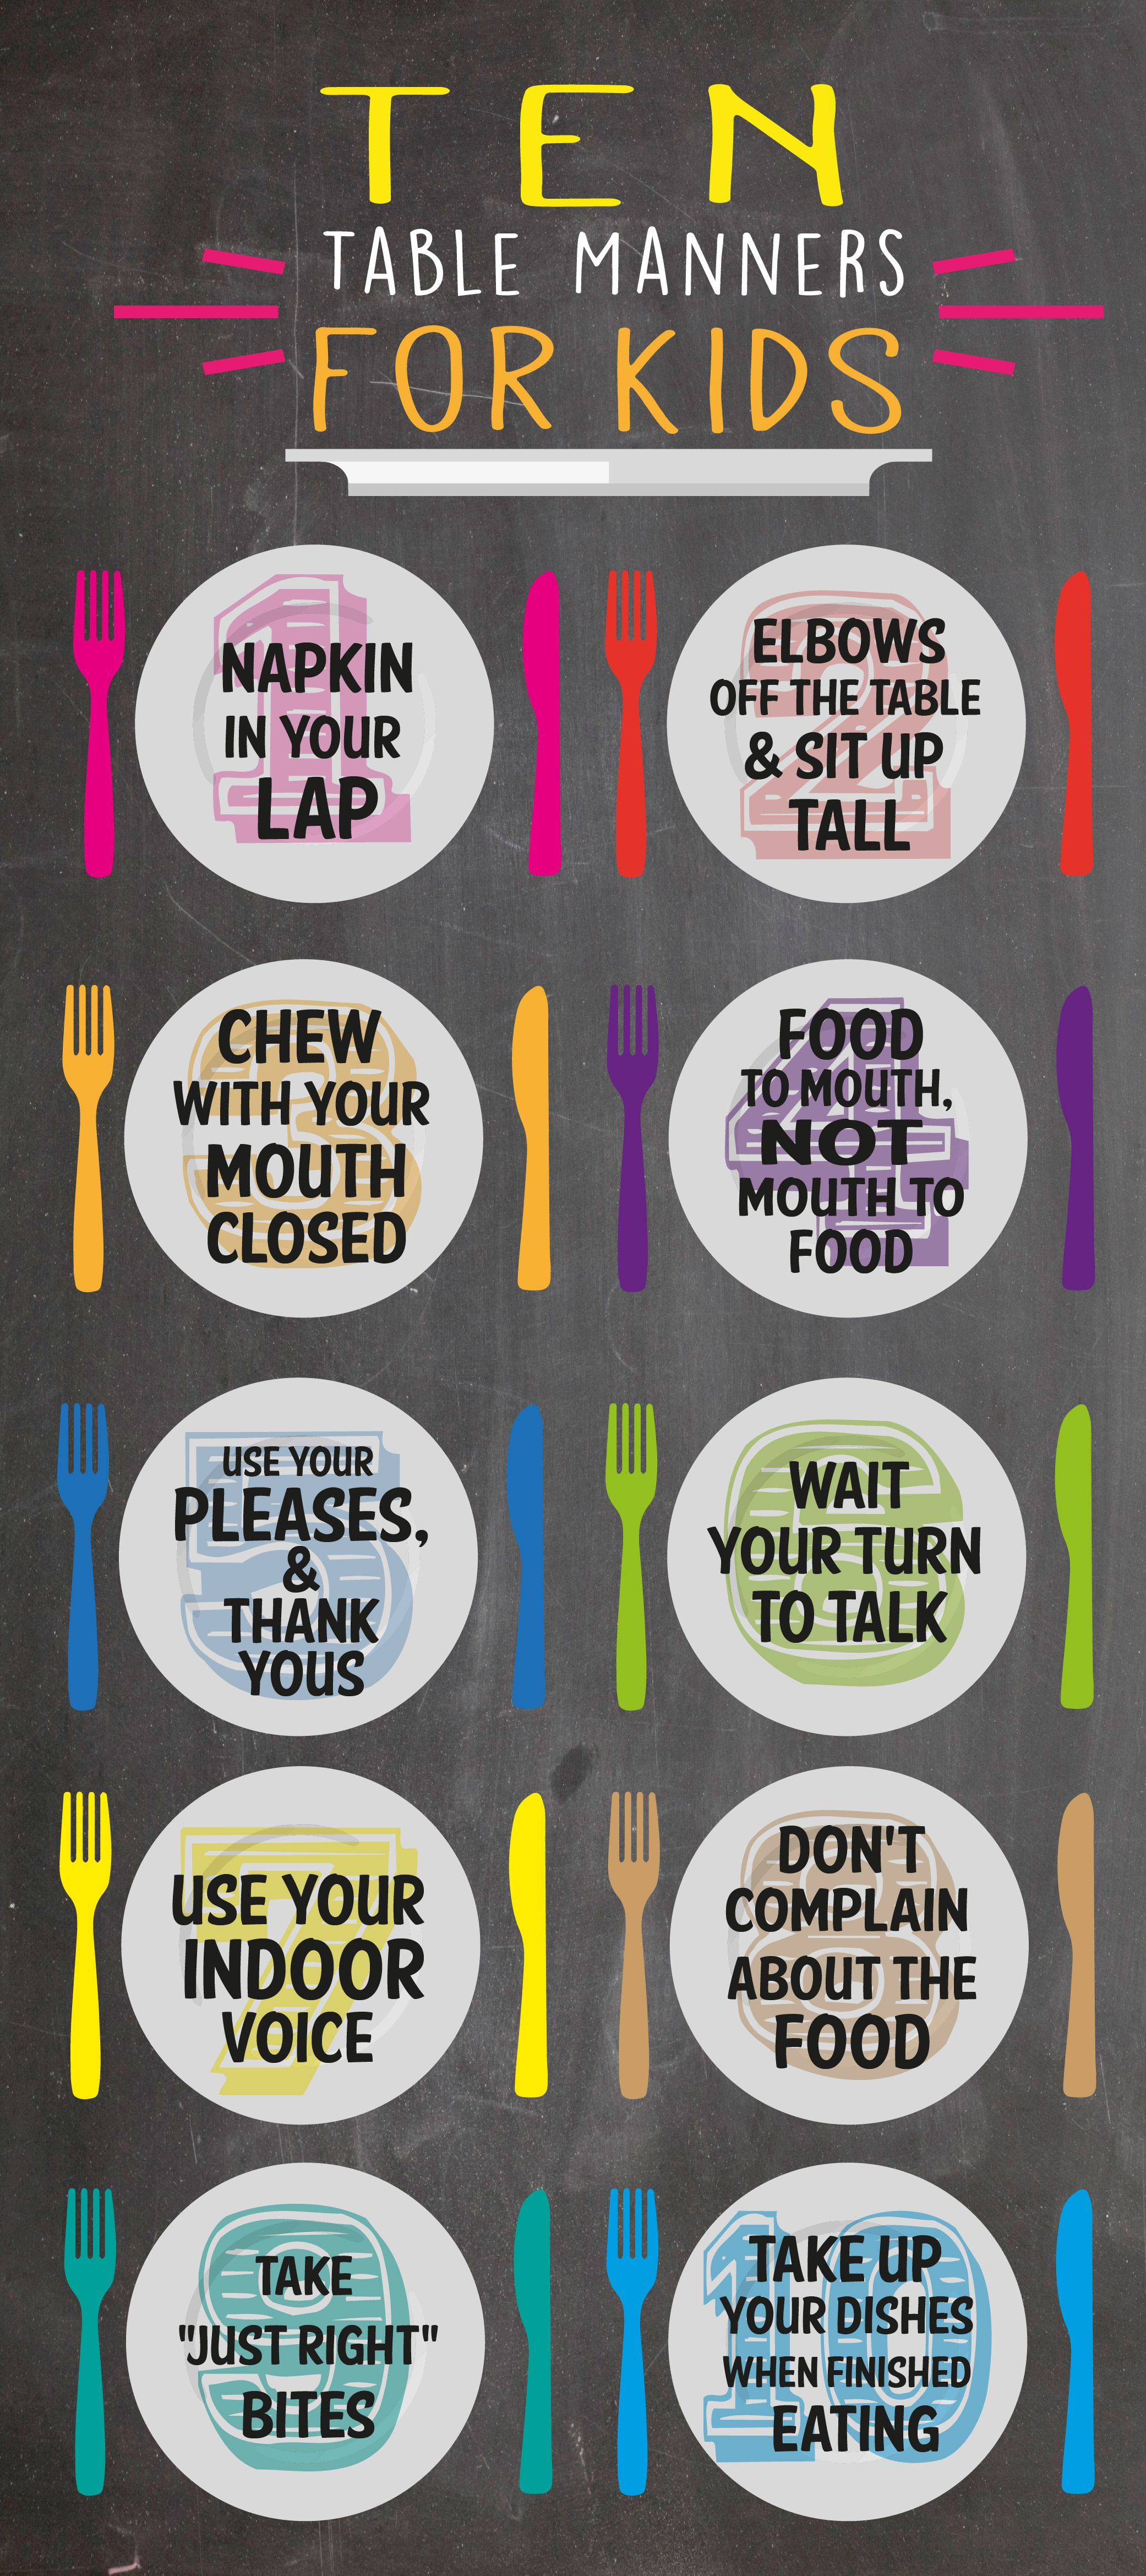 Table Manners Apply To Kids And Adults